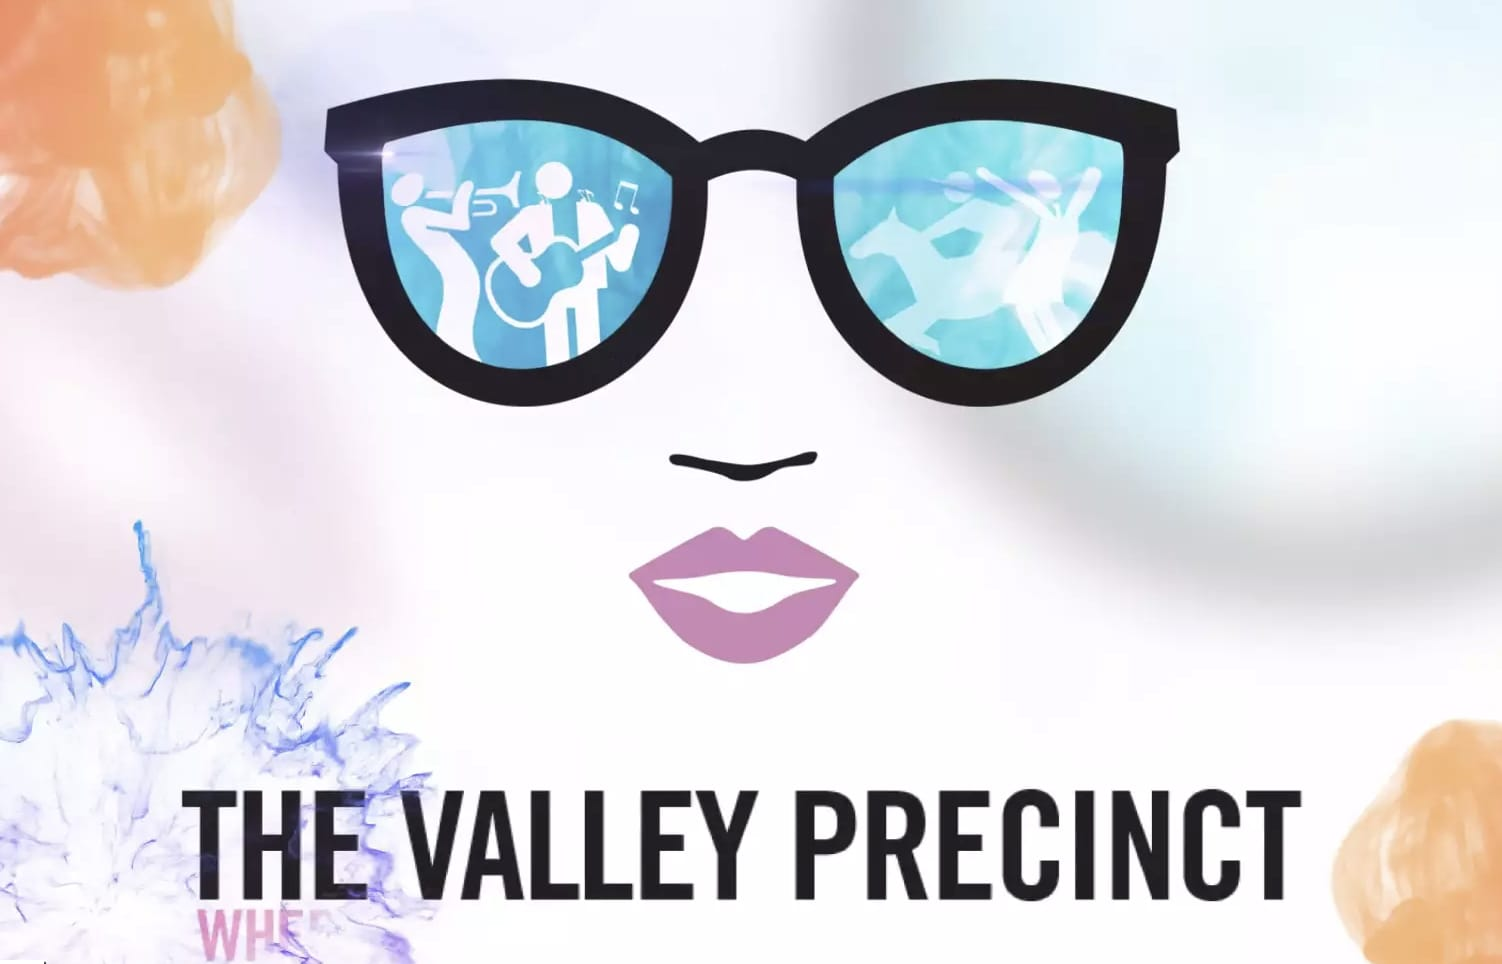 The Valley Precinct Motion Graphics sequence